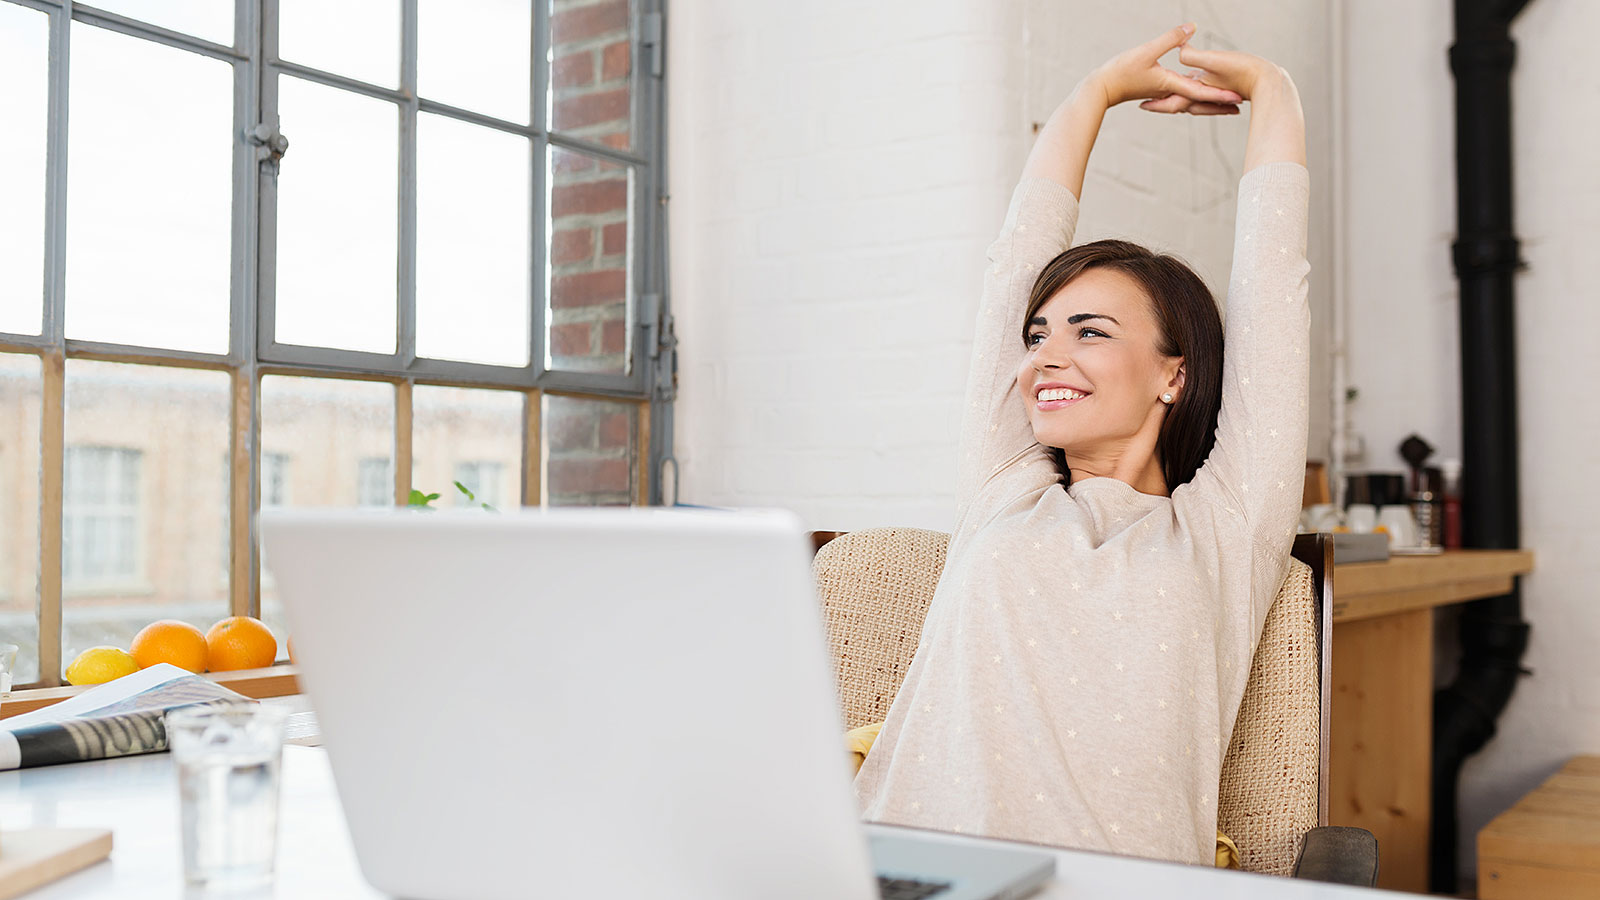 Letting your emotions rule when deciding on a job yields more job satisfaction, study finds